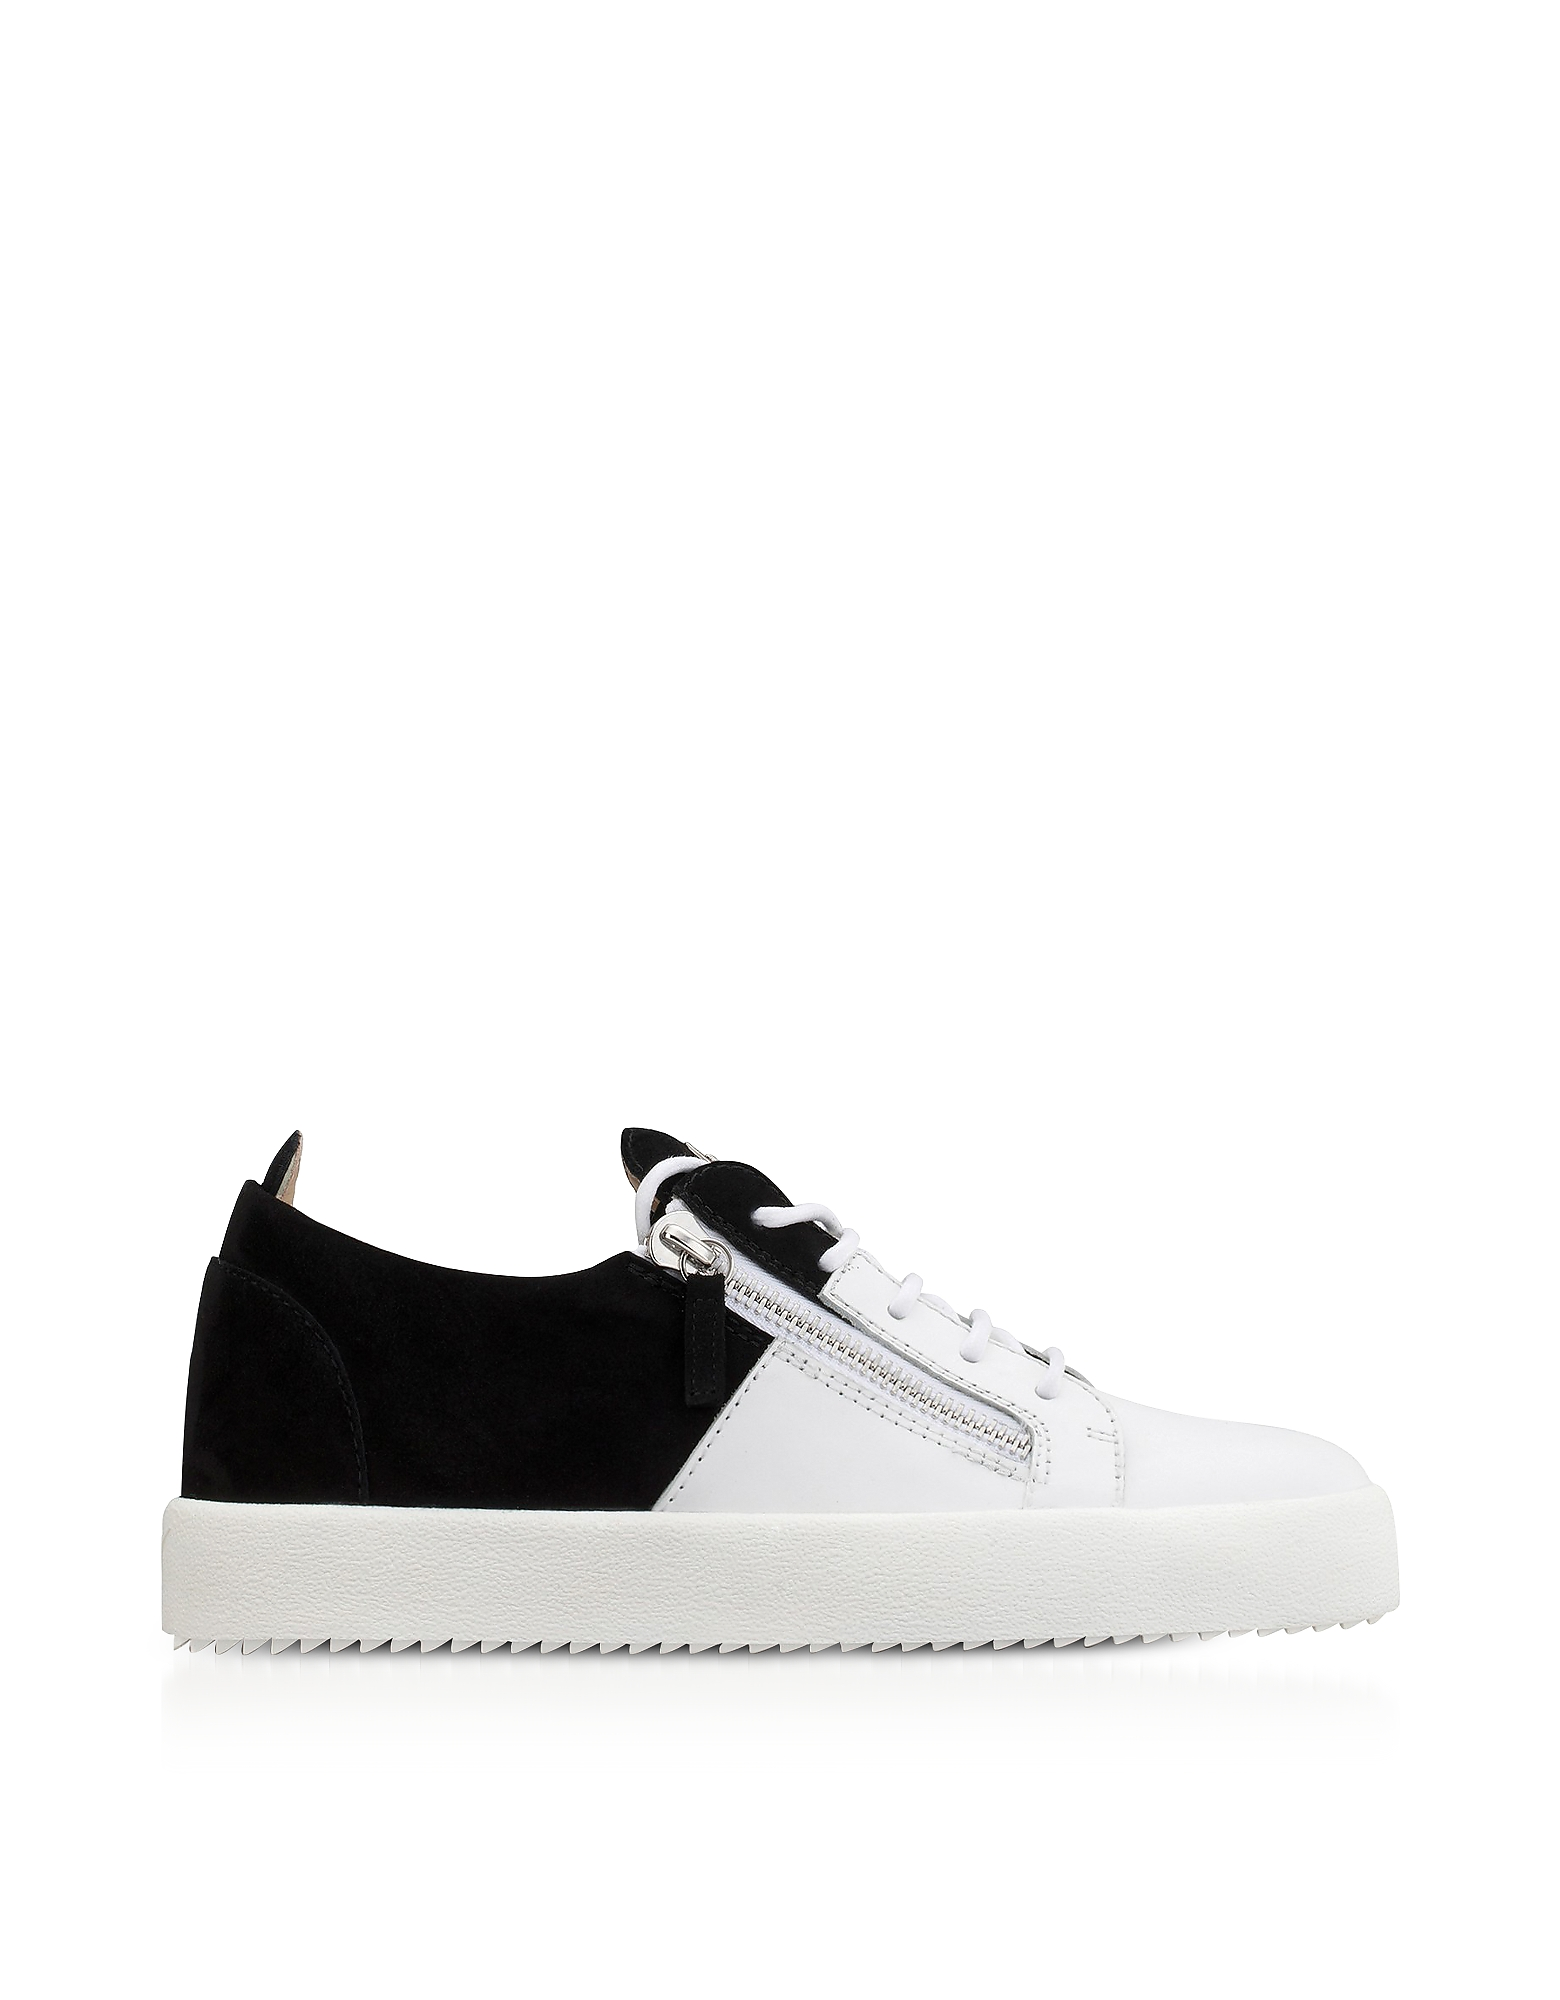 Giuseppe Zanotti Shoes, White Leather and Black Suede Double Men's Sneakers